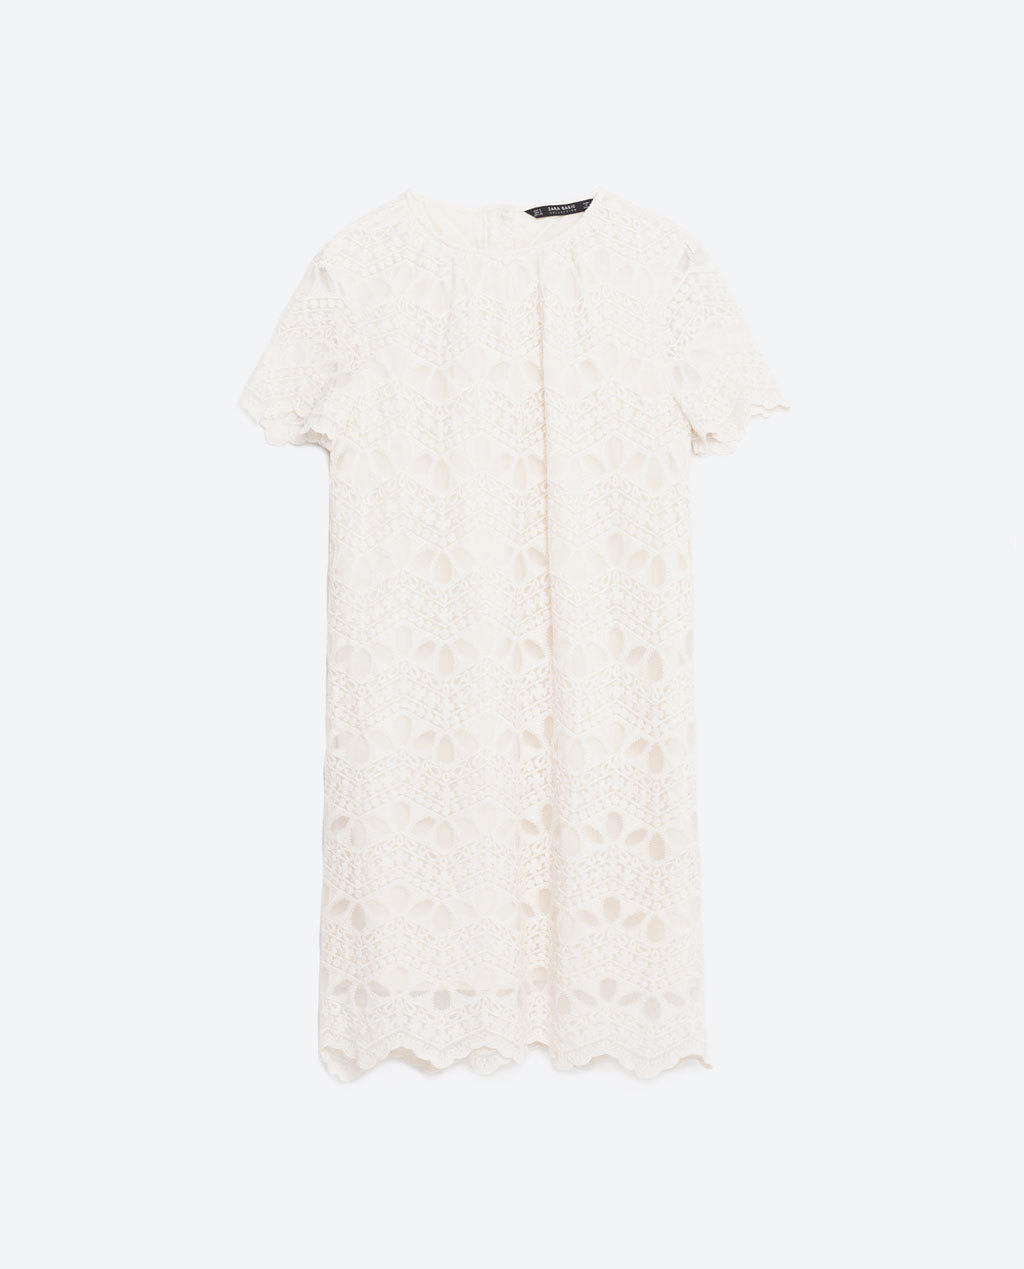 Lace Dress - style: shift; pattern: plain; predominant colour: white; occasions: casual; length: just above the knee; fit: body skimming; fibres: cotton - mix; neckline: crew; sleeve length: short sleeve; sleeve style: standard; texture group: lace; pattern type: fabric; pattern size: standard; season: s/s 2016